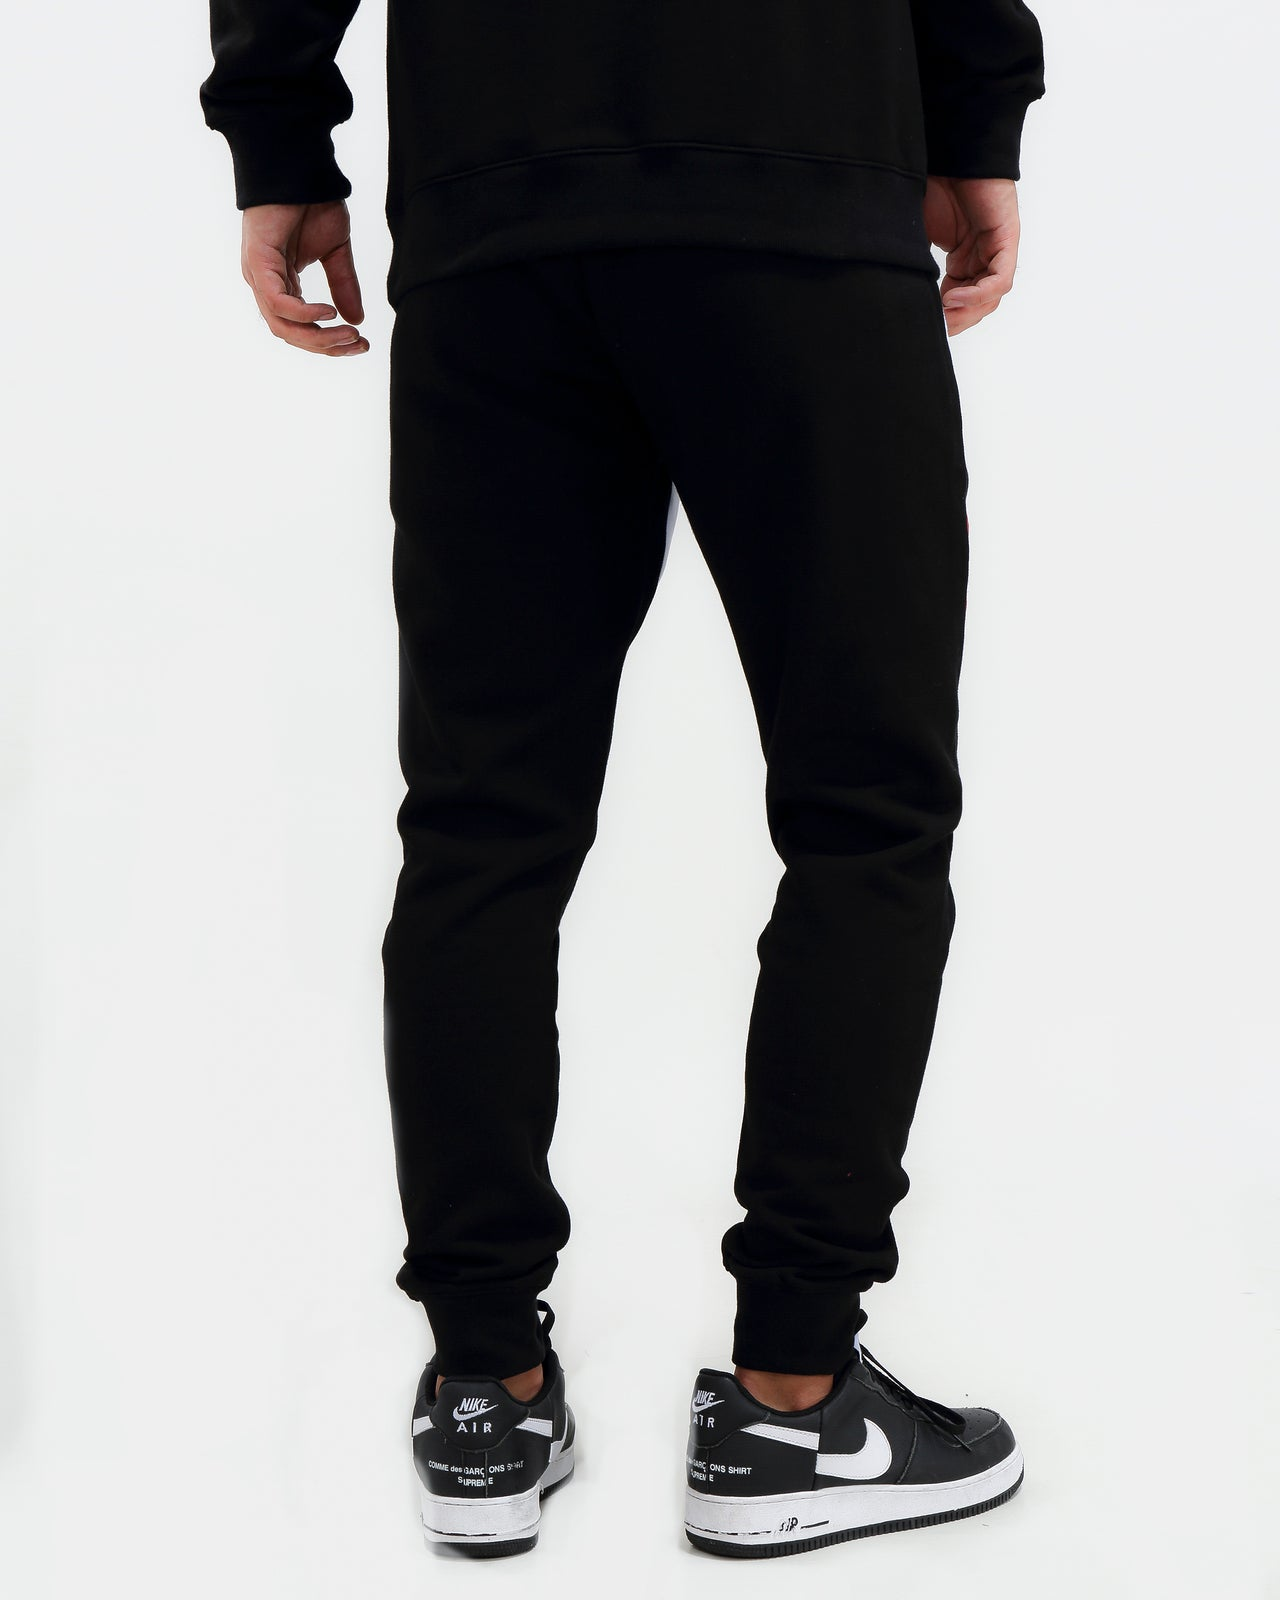 CHENILLE HEX LOGO PANTS-COLOR: BLACK